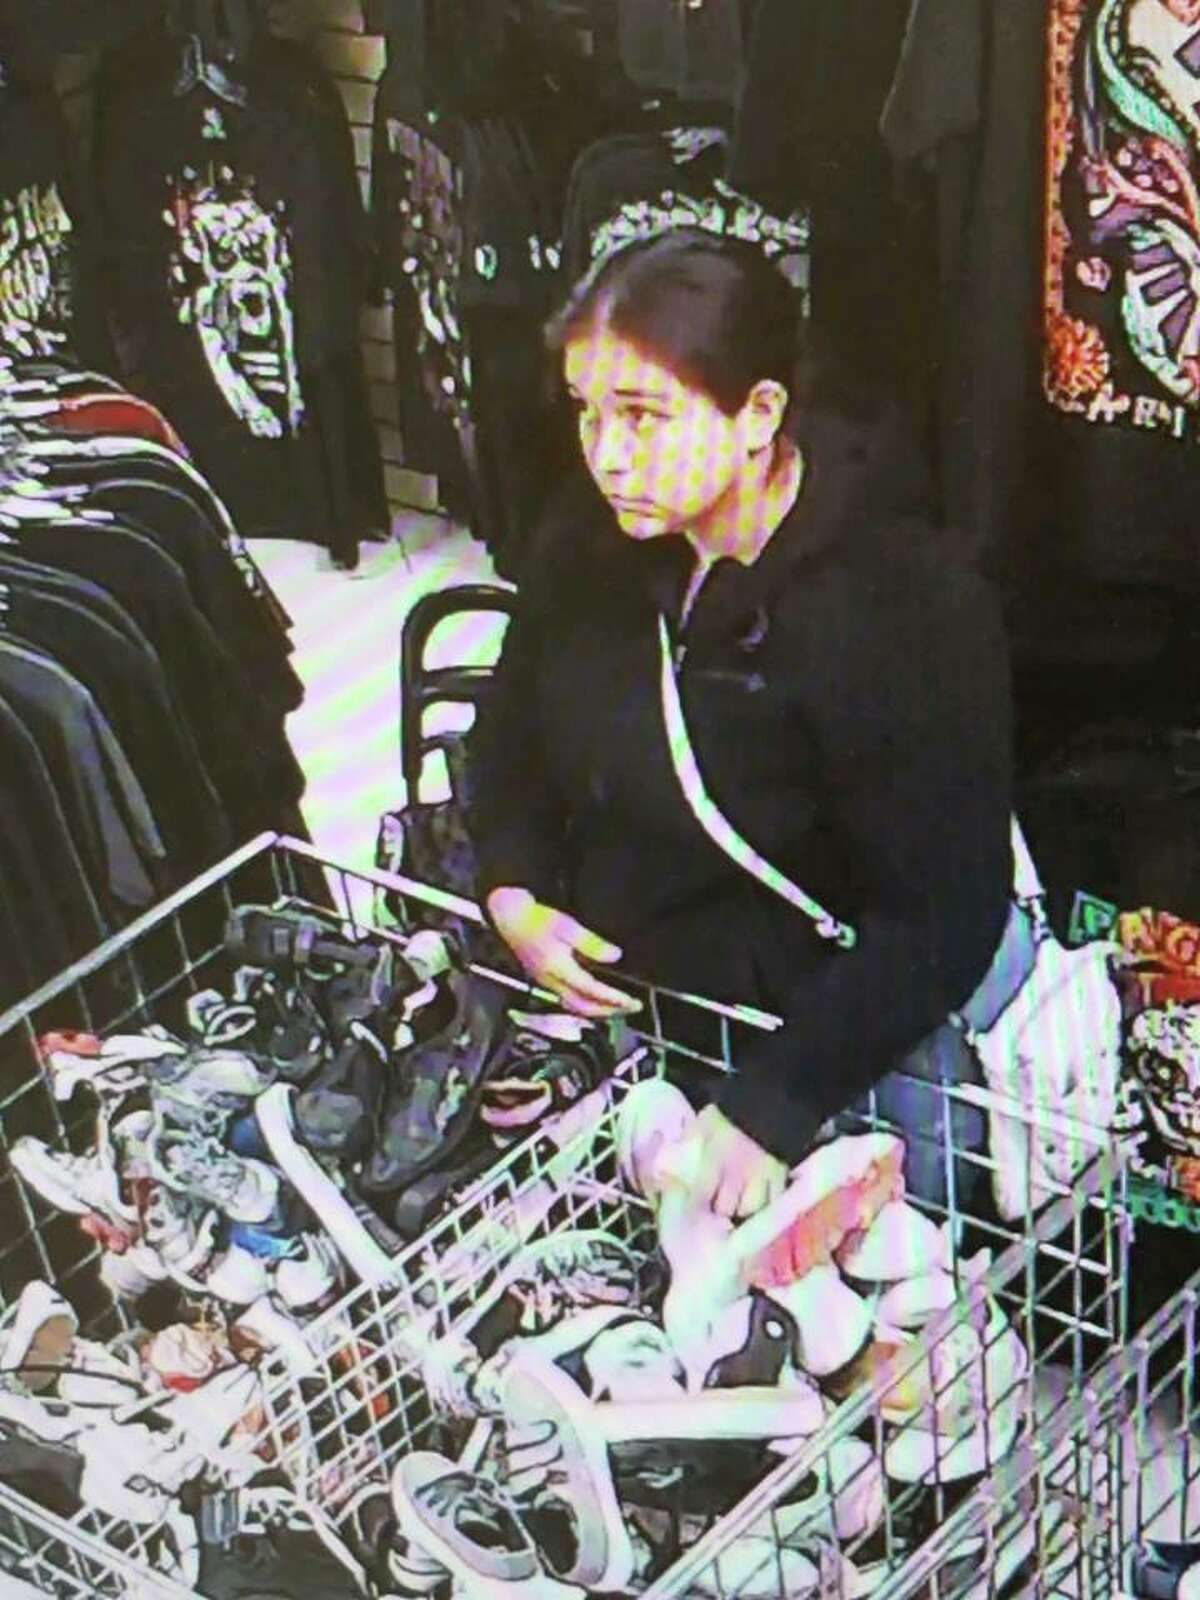 Authorities said this woman is wanted for theft of property that was reported on Wednesday.